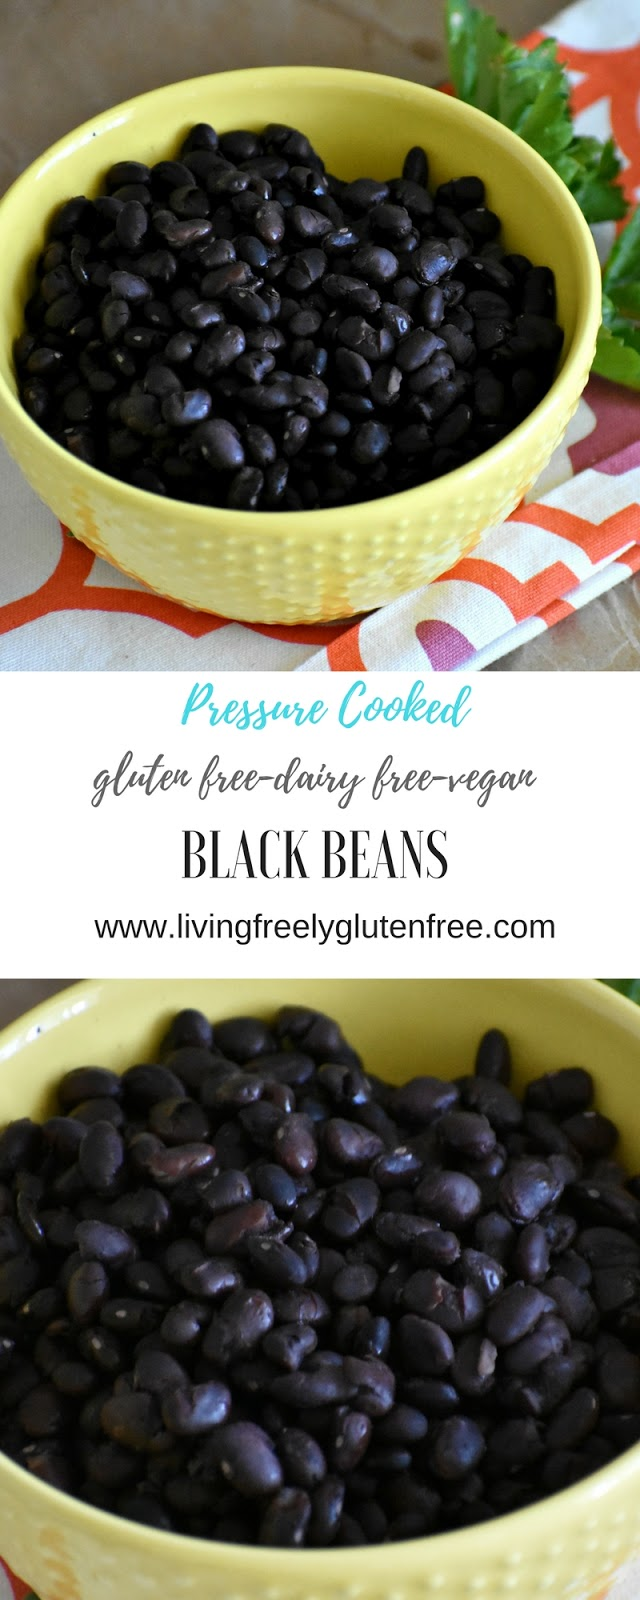 Pressure Cooked Black Beans - Living Freely Gluten Free